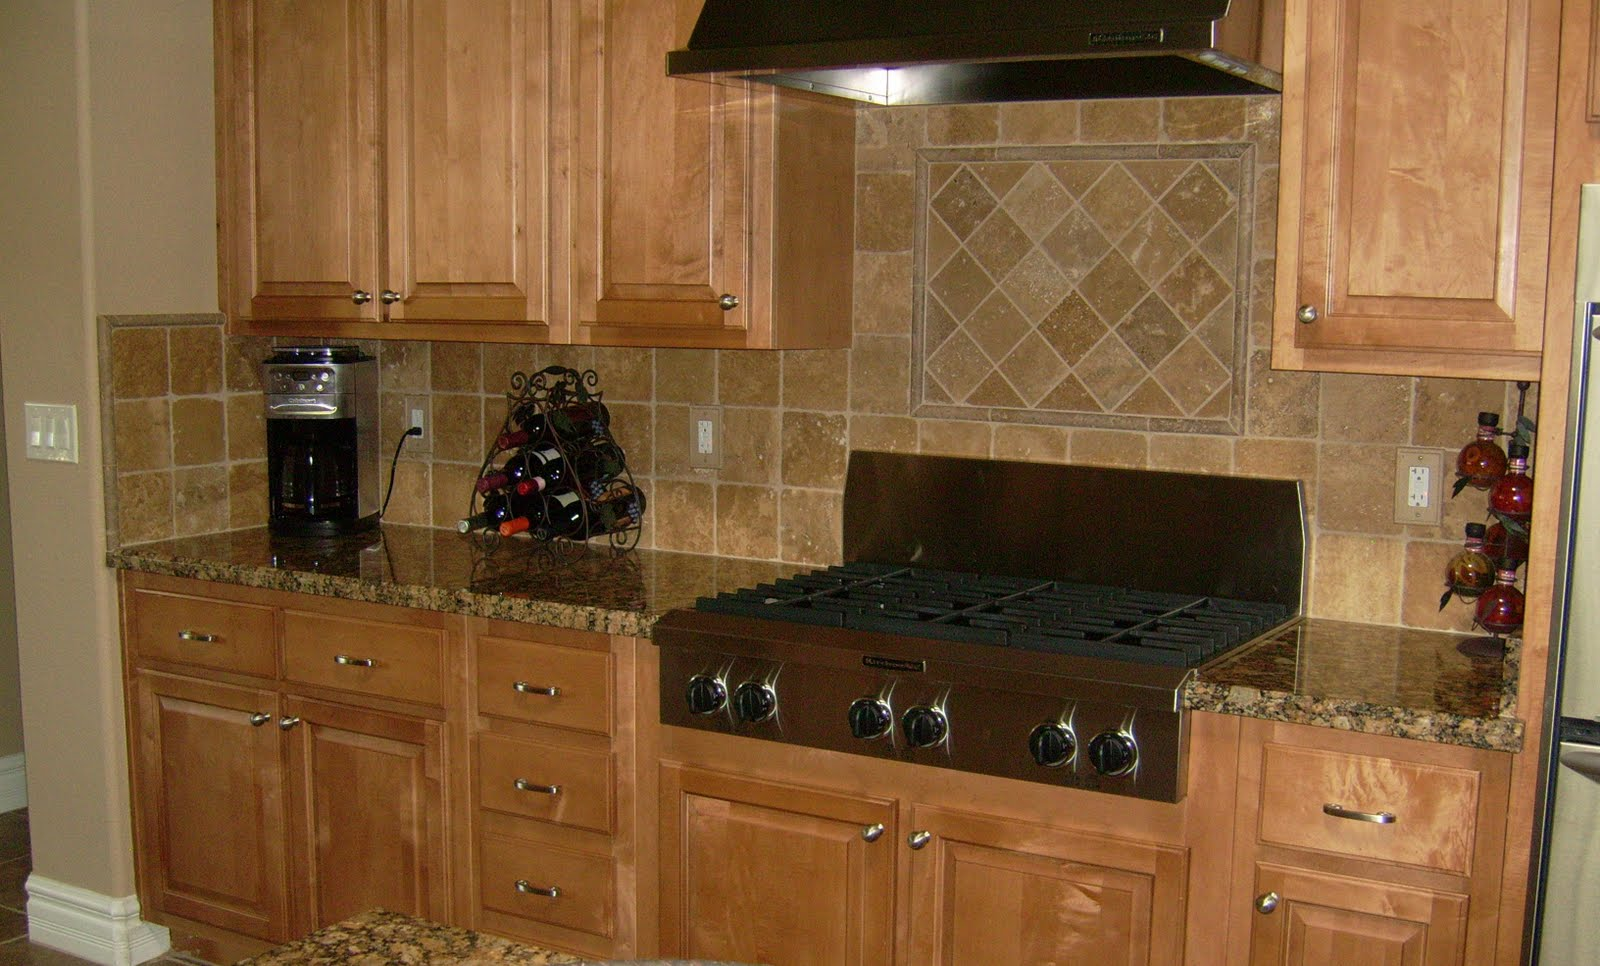 Pictures kitchen backsplash ideas Kitchen tile design ideas backsplash